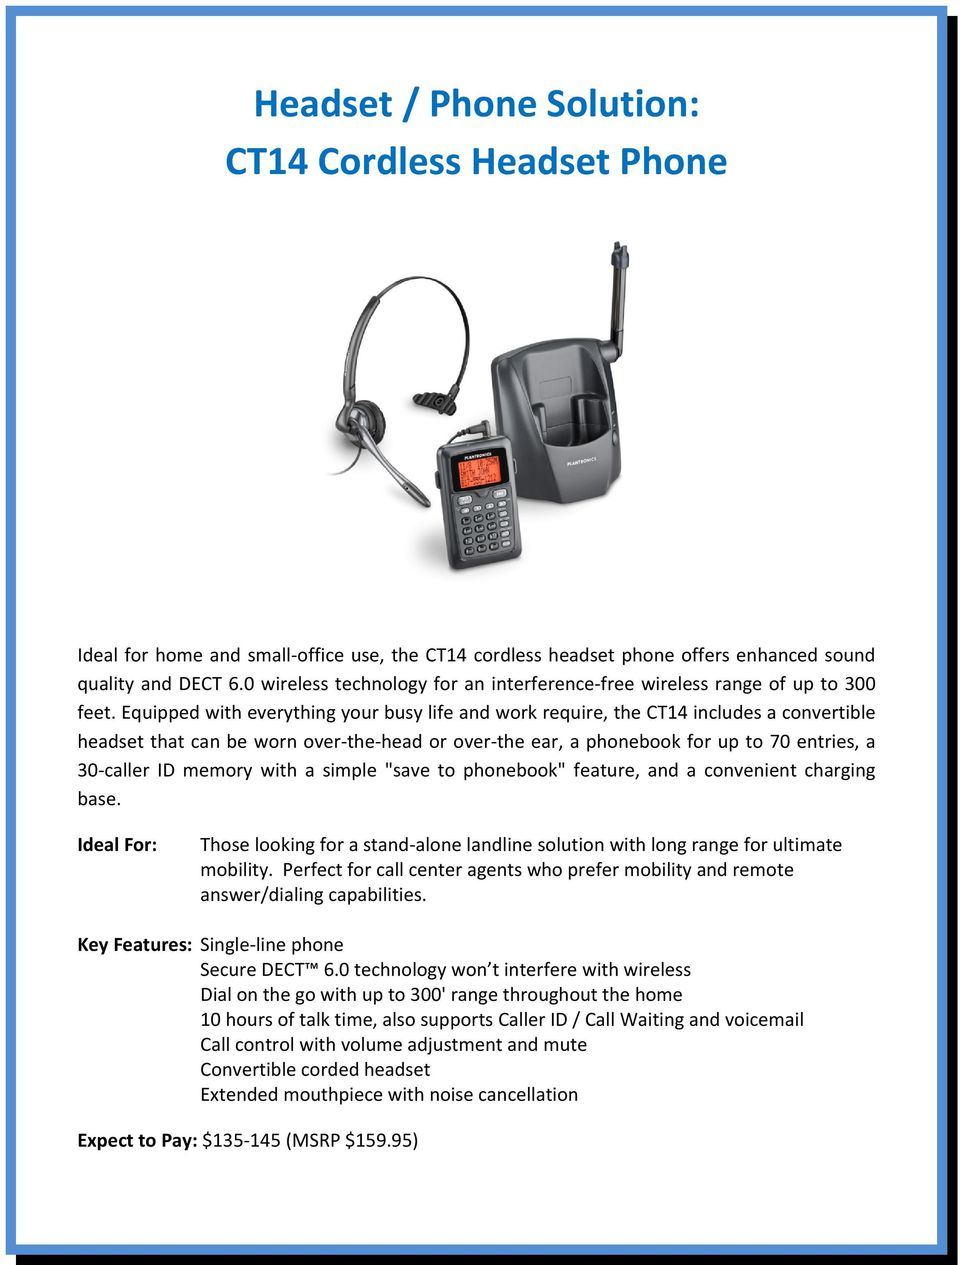 Equipped with everything your busy life and work require, the CT14 includes  a convertible headset